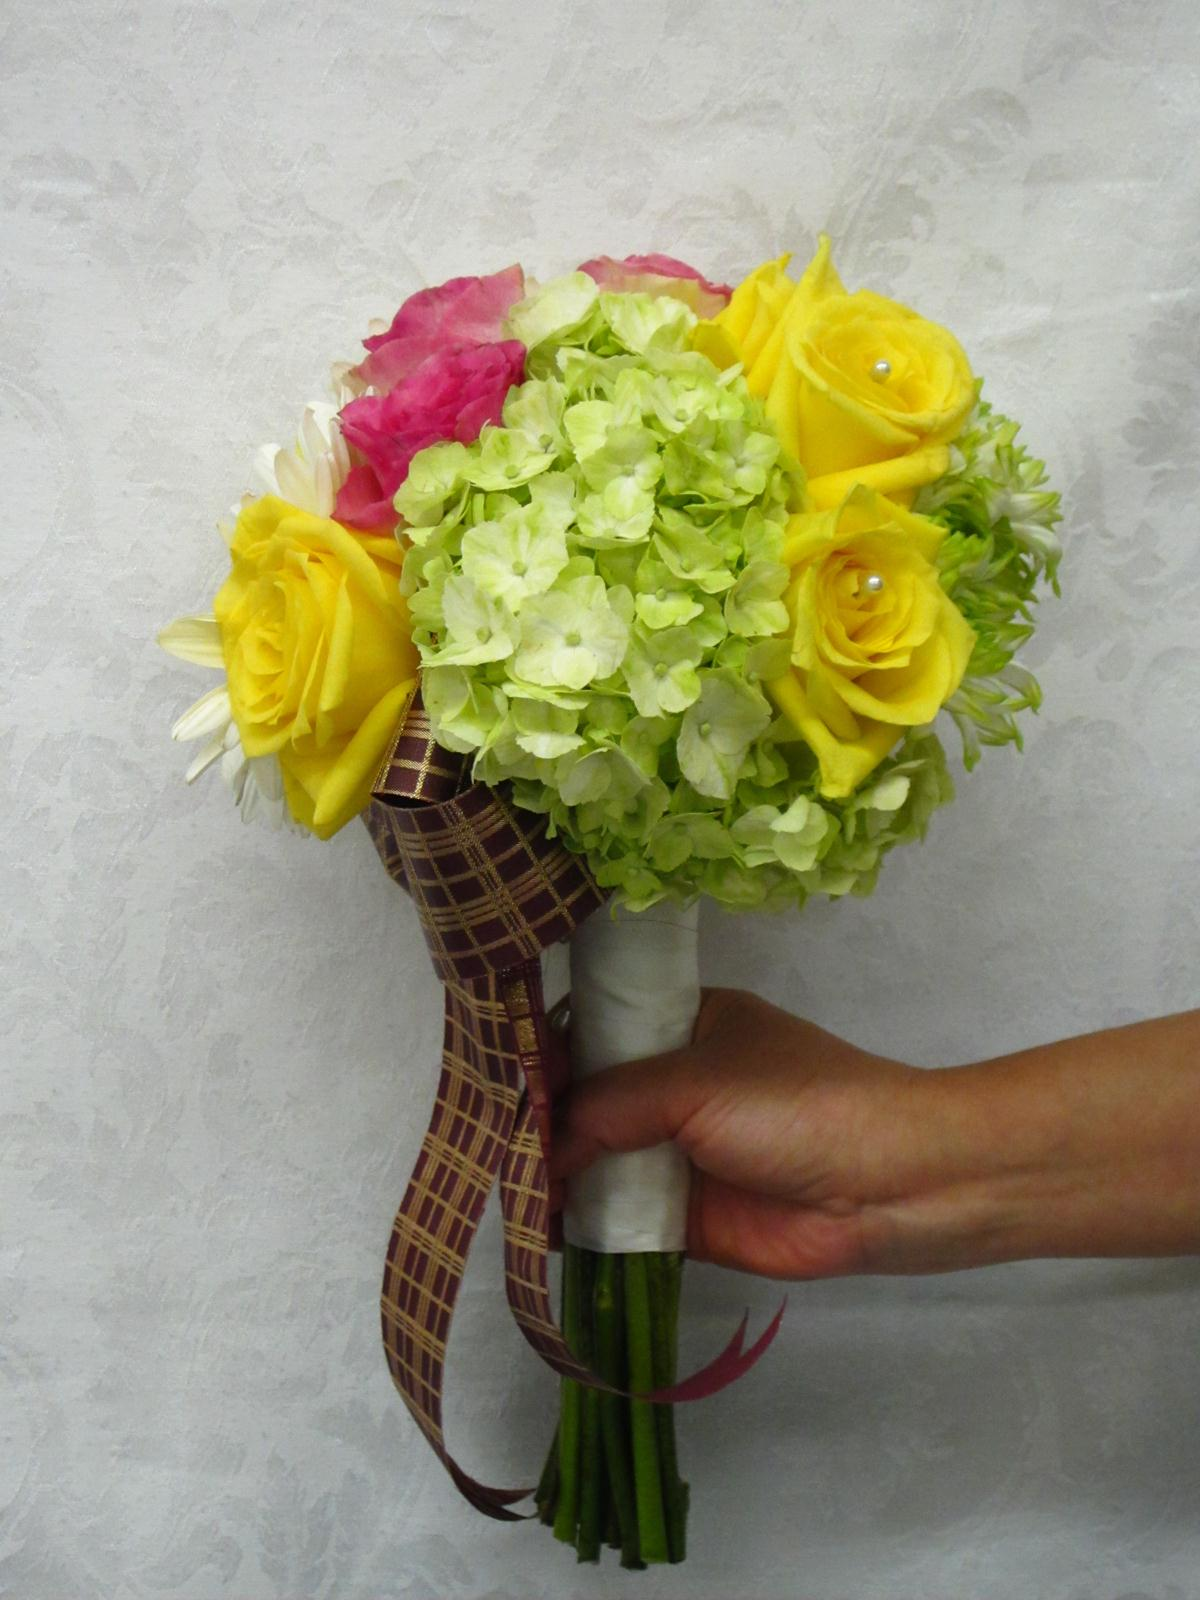 Gellery of bridal bouquets california flower art academy a bridal bouquet is one of mandatory items for wedding floral decorations this small beautiful piece definitely enhances the beauty of a bride and all izmirmasajfo